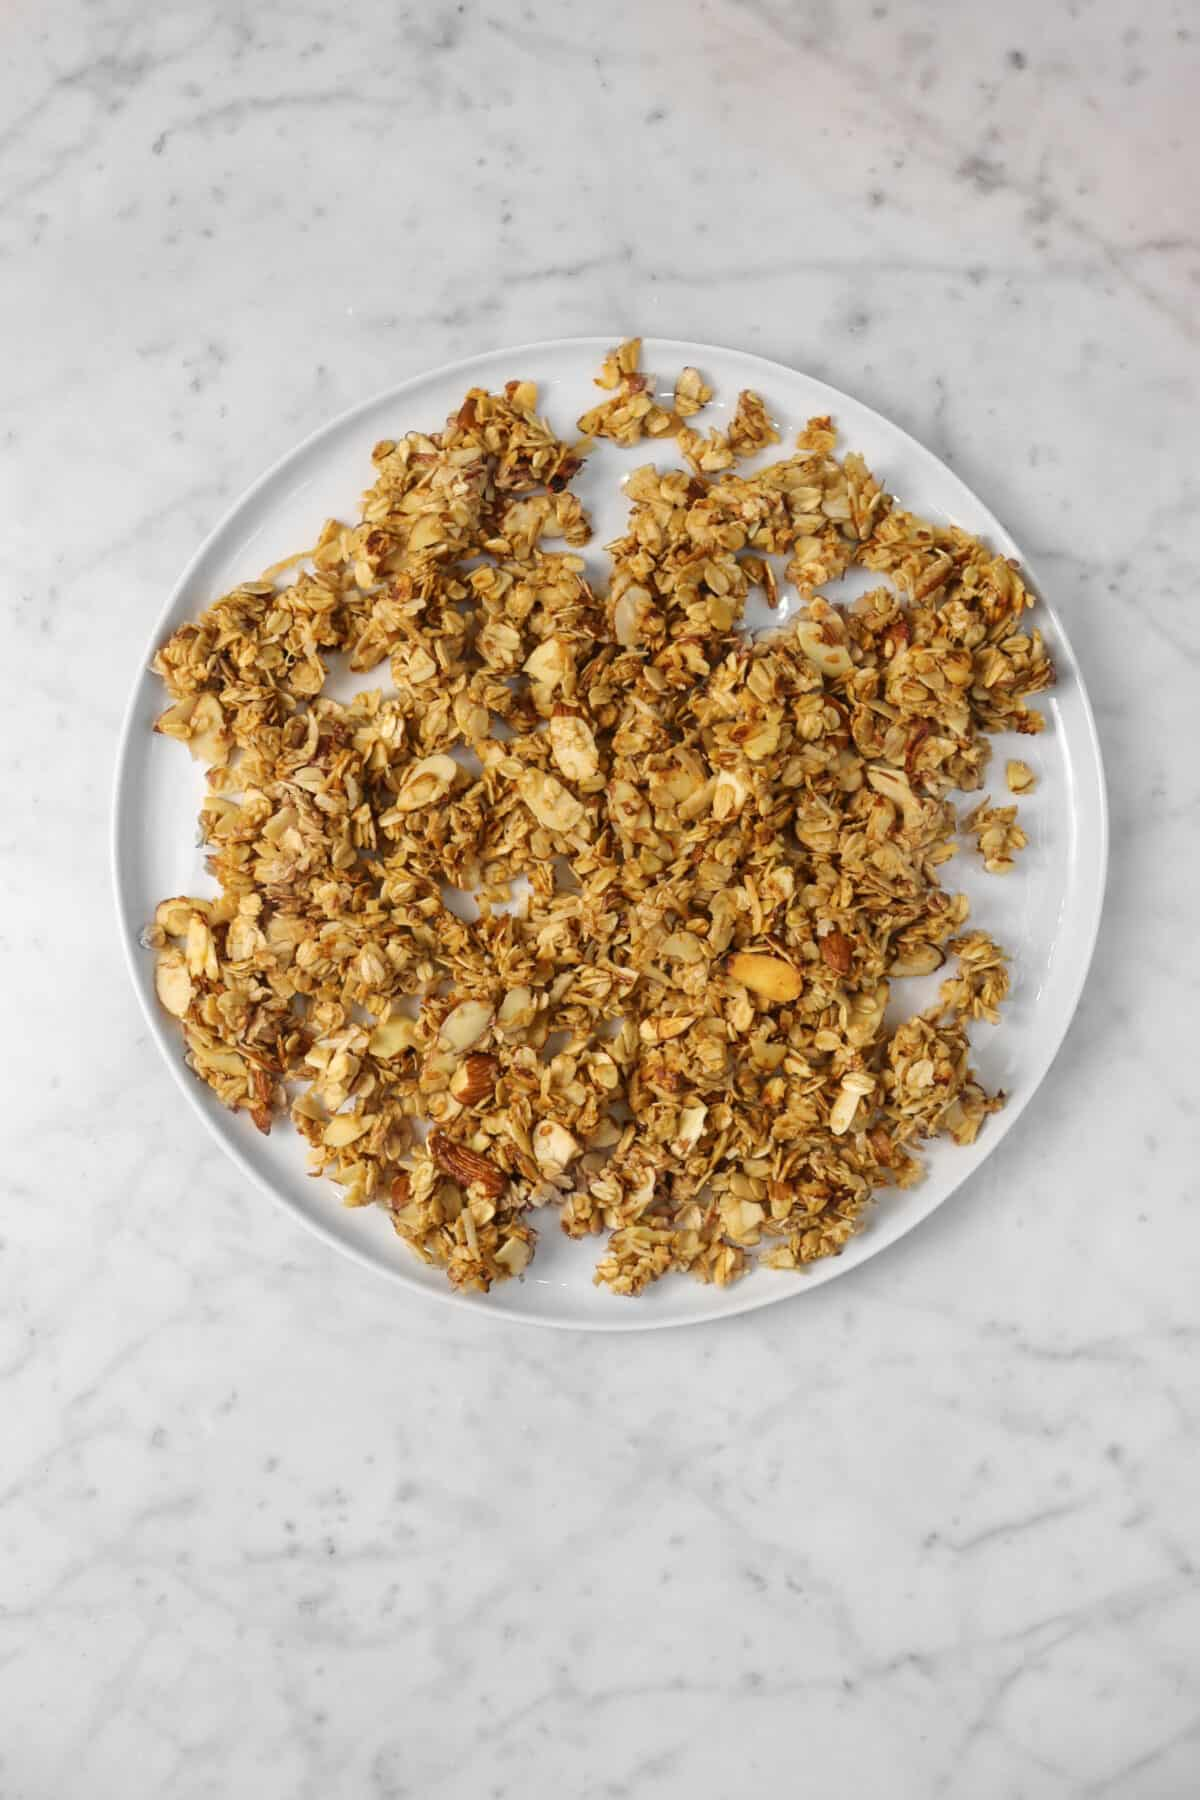 granola spread out on a large white plate